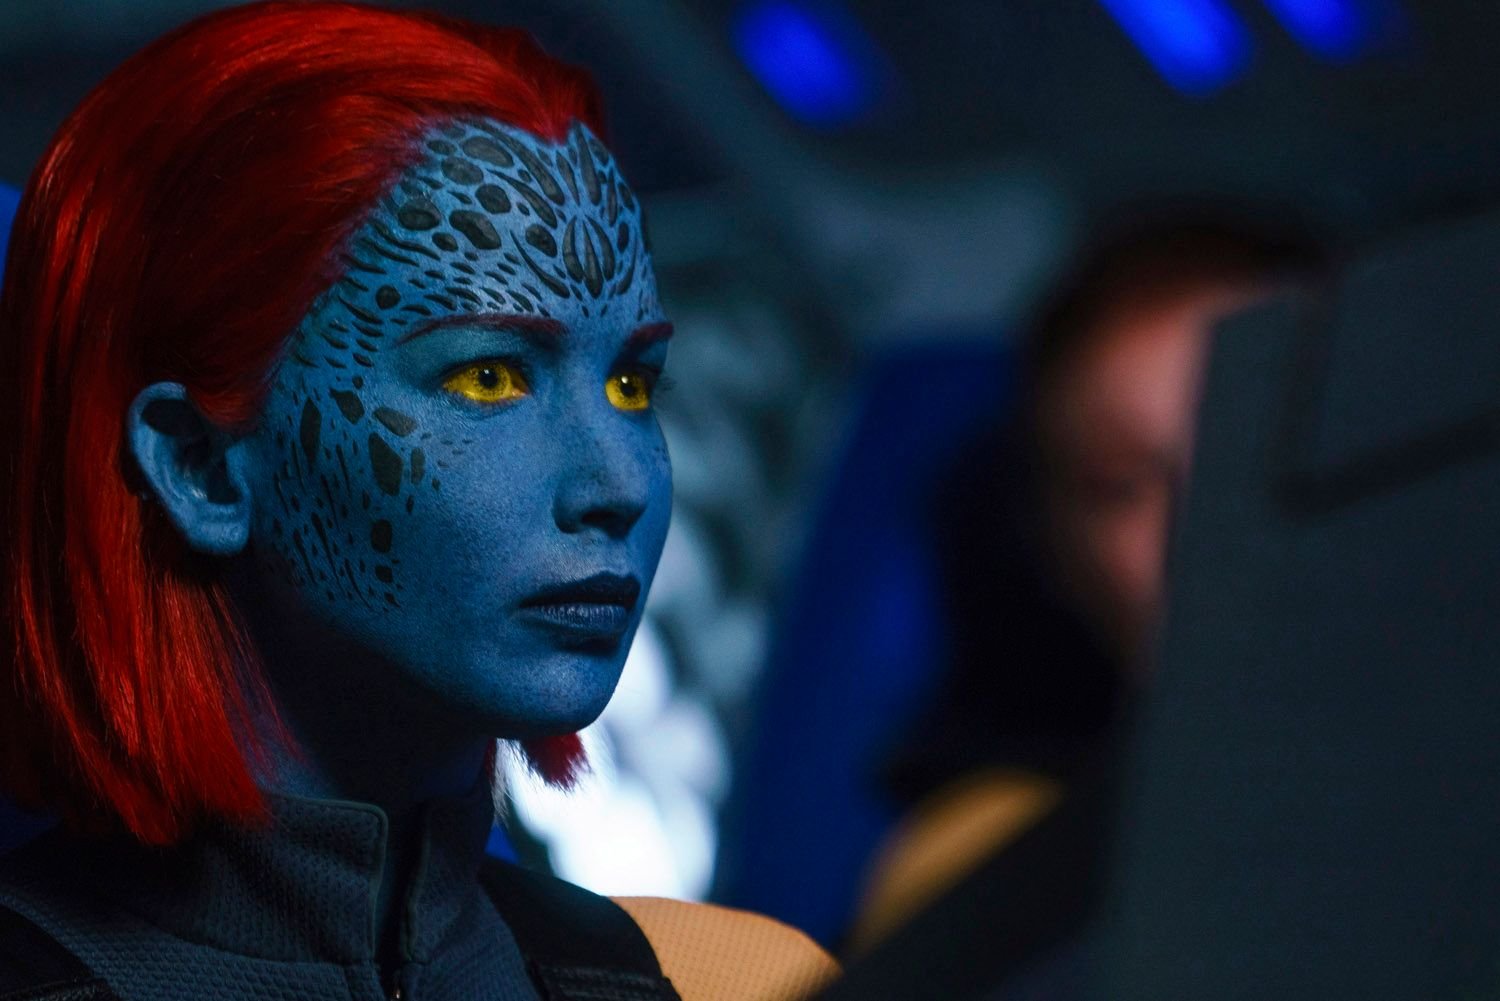 Men: Dark Phoenix pushed to 2019 as other Fox films reshuffle